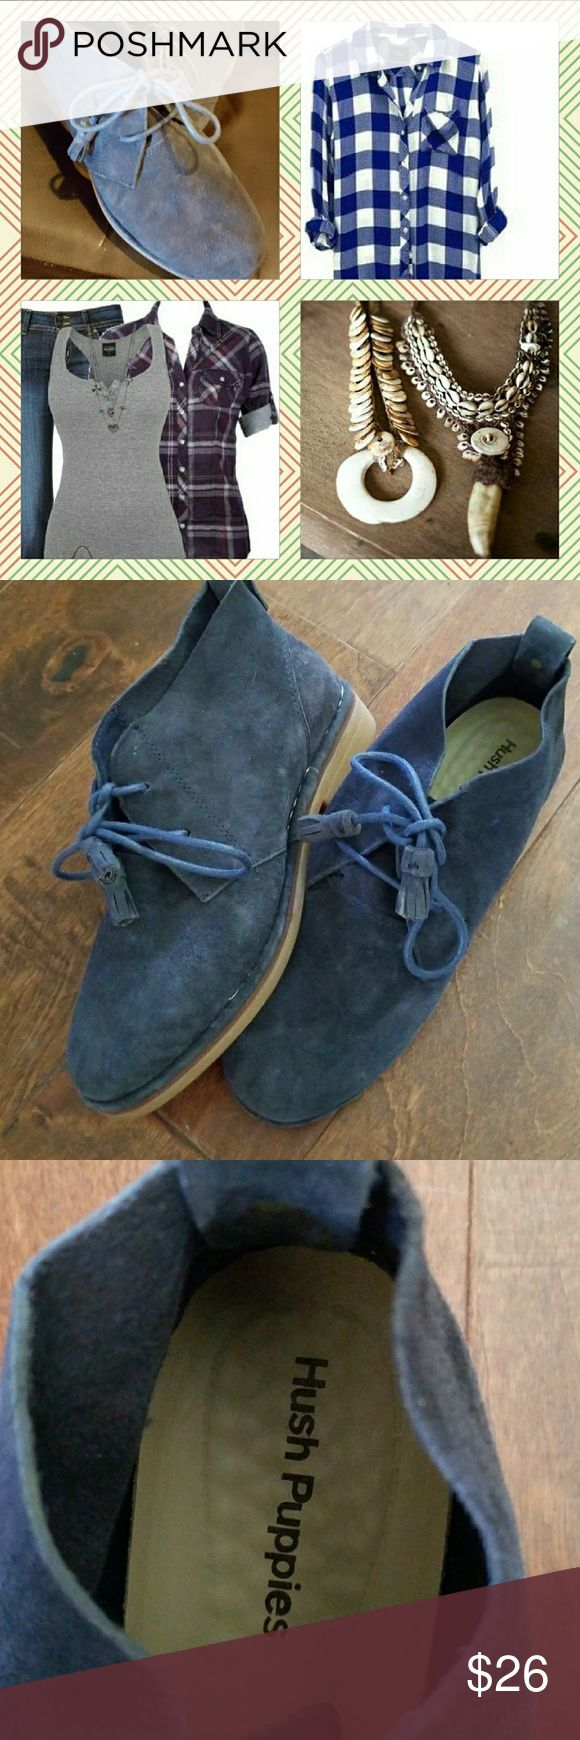 Hush Puppies Blue Suede Booties Soft Blue Suede Booties Size US 7 Hush Puppies Shoes Ankle Boots & Booties